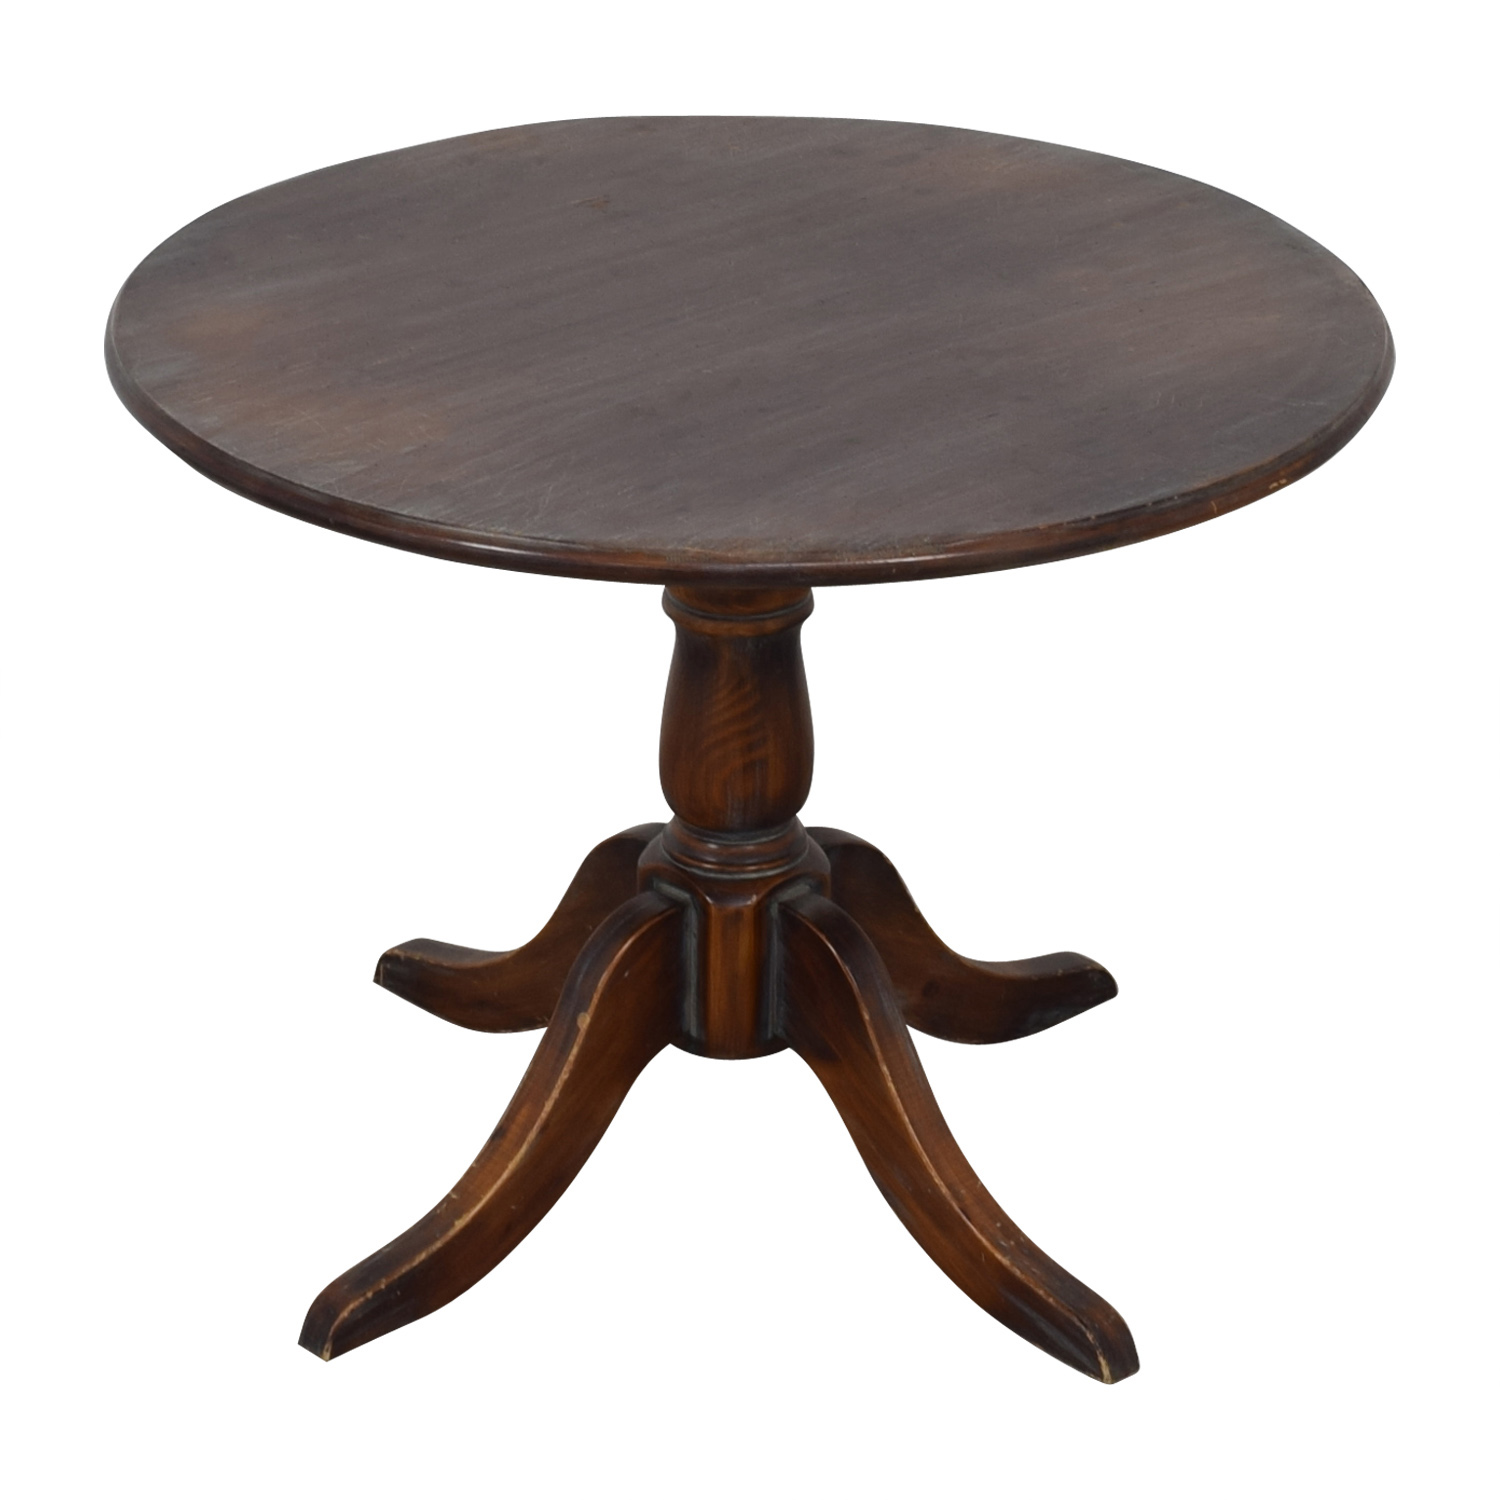 pottery barn round wood pedestal dining table used rustic accent coupon best bedside target night light console furniture nautical entry day half moon narrow kitchen purple corner